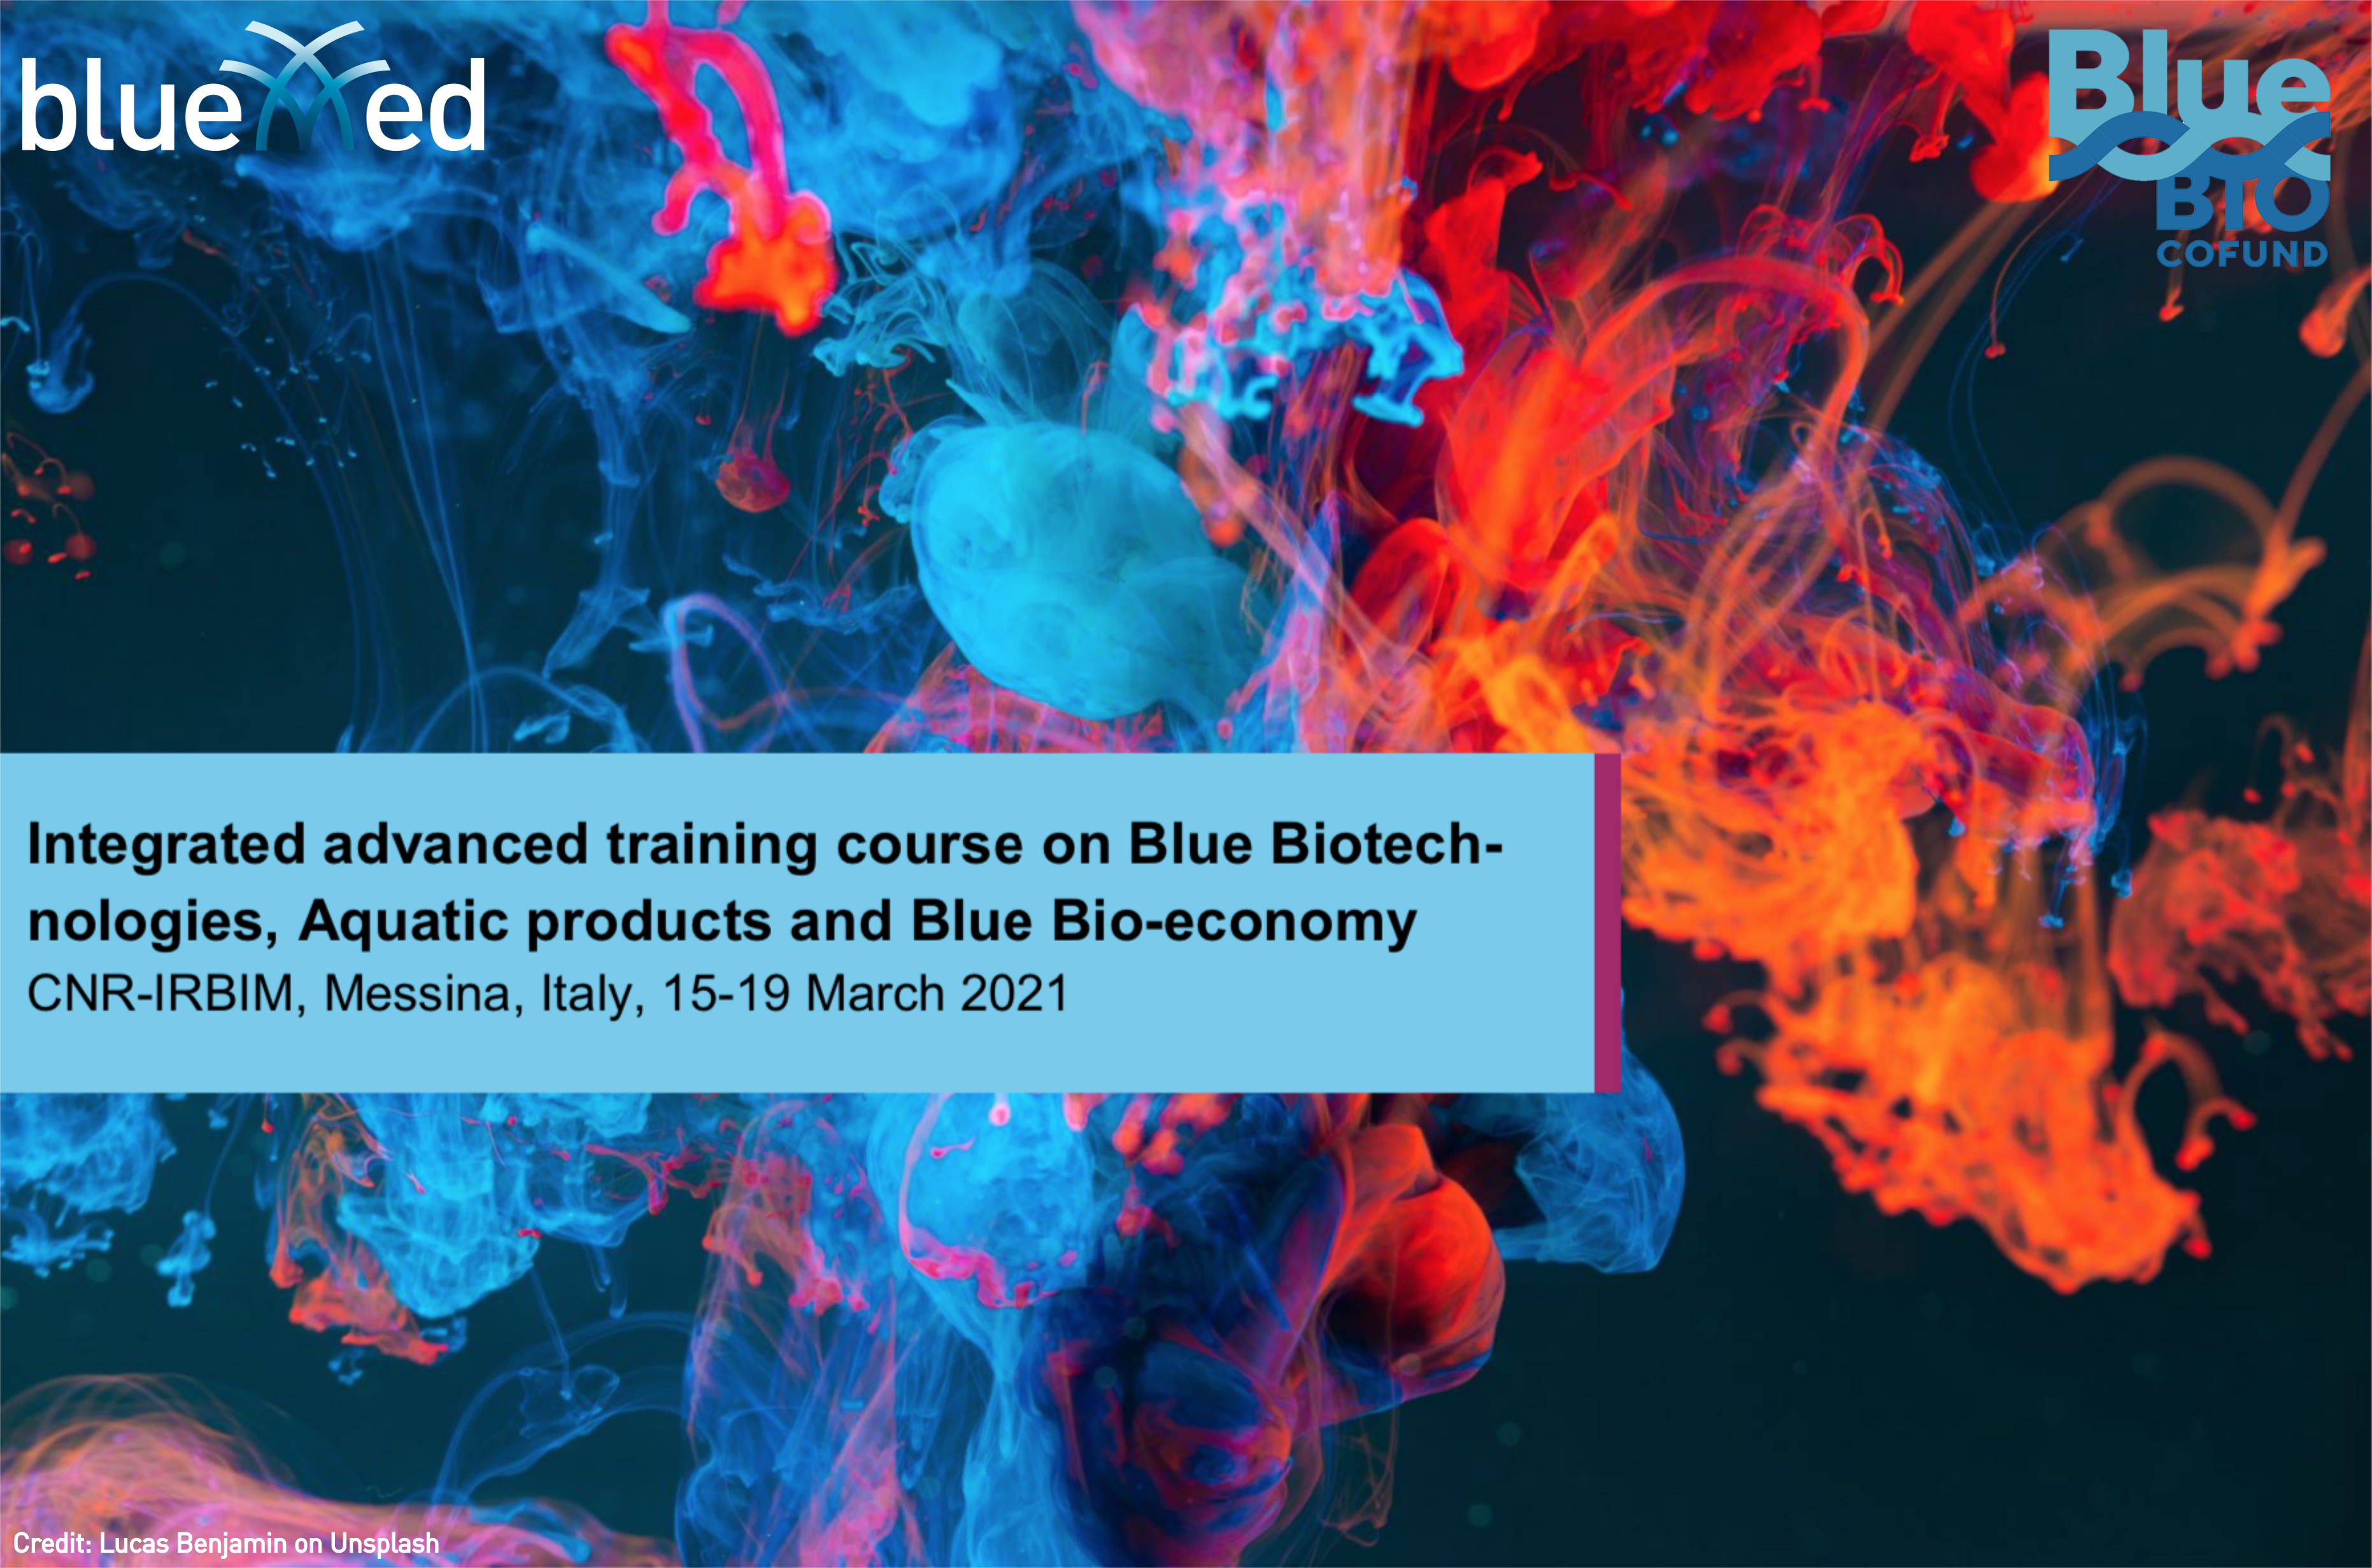 Training course on blue biotechnologies, jointly organised by BlueMed CSA and the BlueBio ERANET COFUND, open for applications